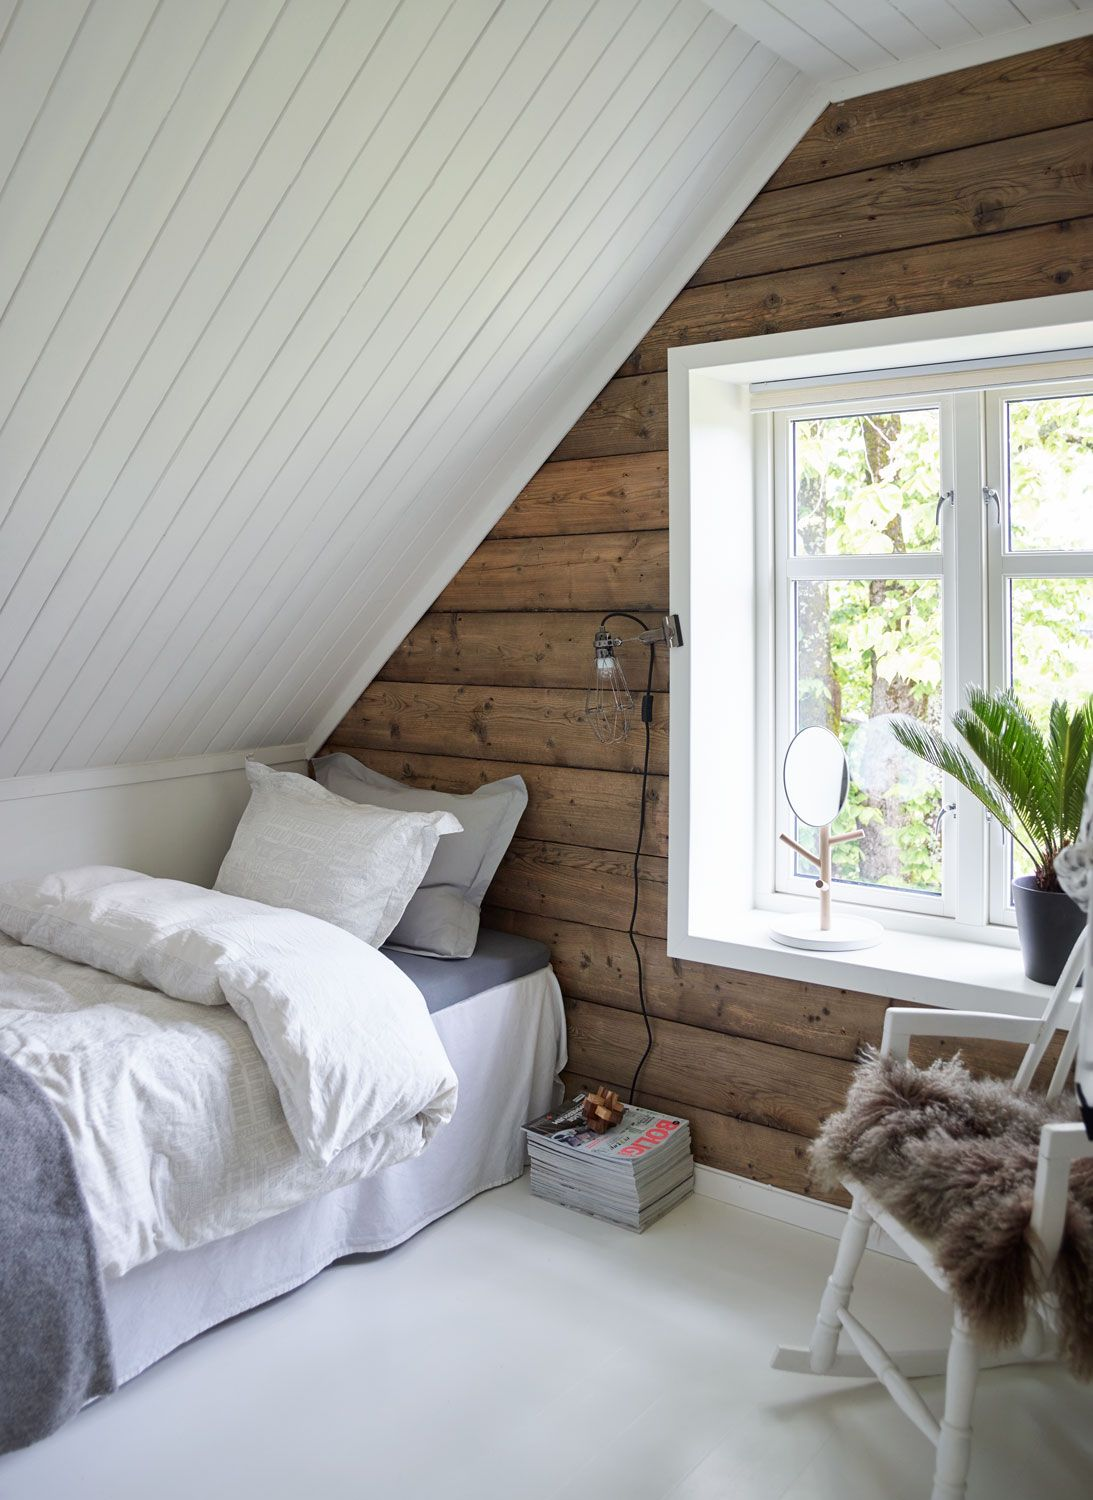 Attic bedroom design and d cor tips small attic bedrooms for Bed styling ideas